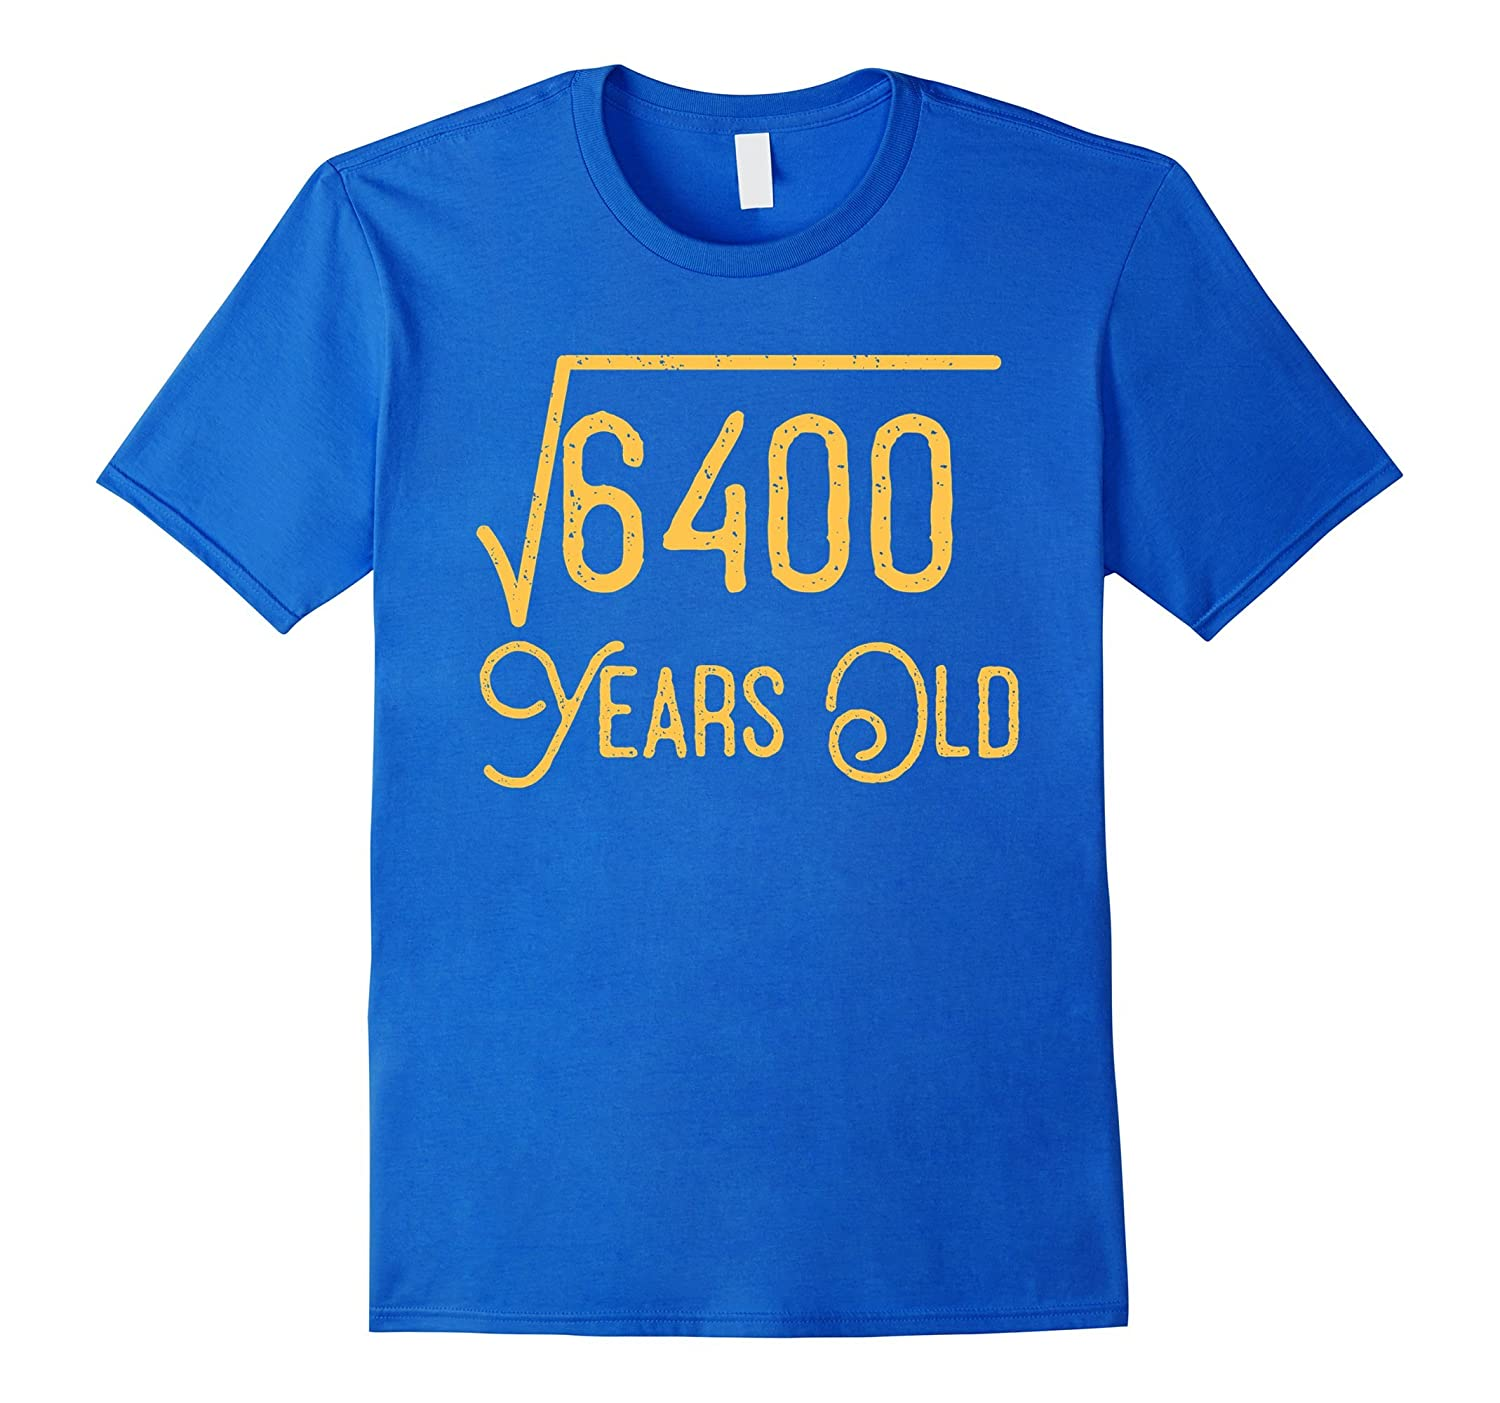 80th Birthday Gift 80 Years Old Square Root Of 6400 T Shirt PL